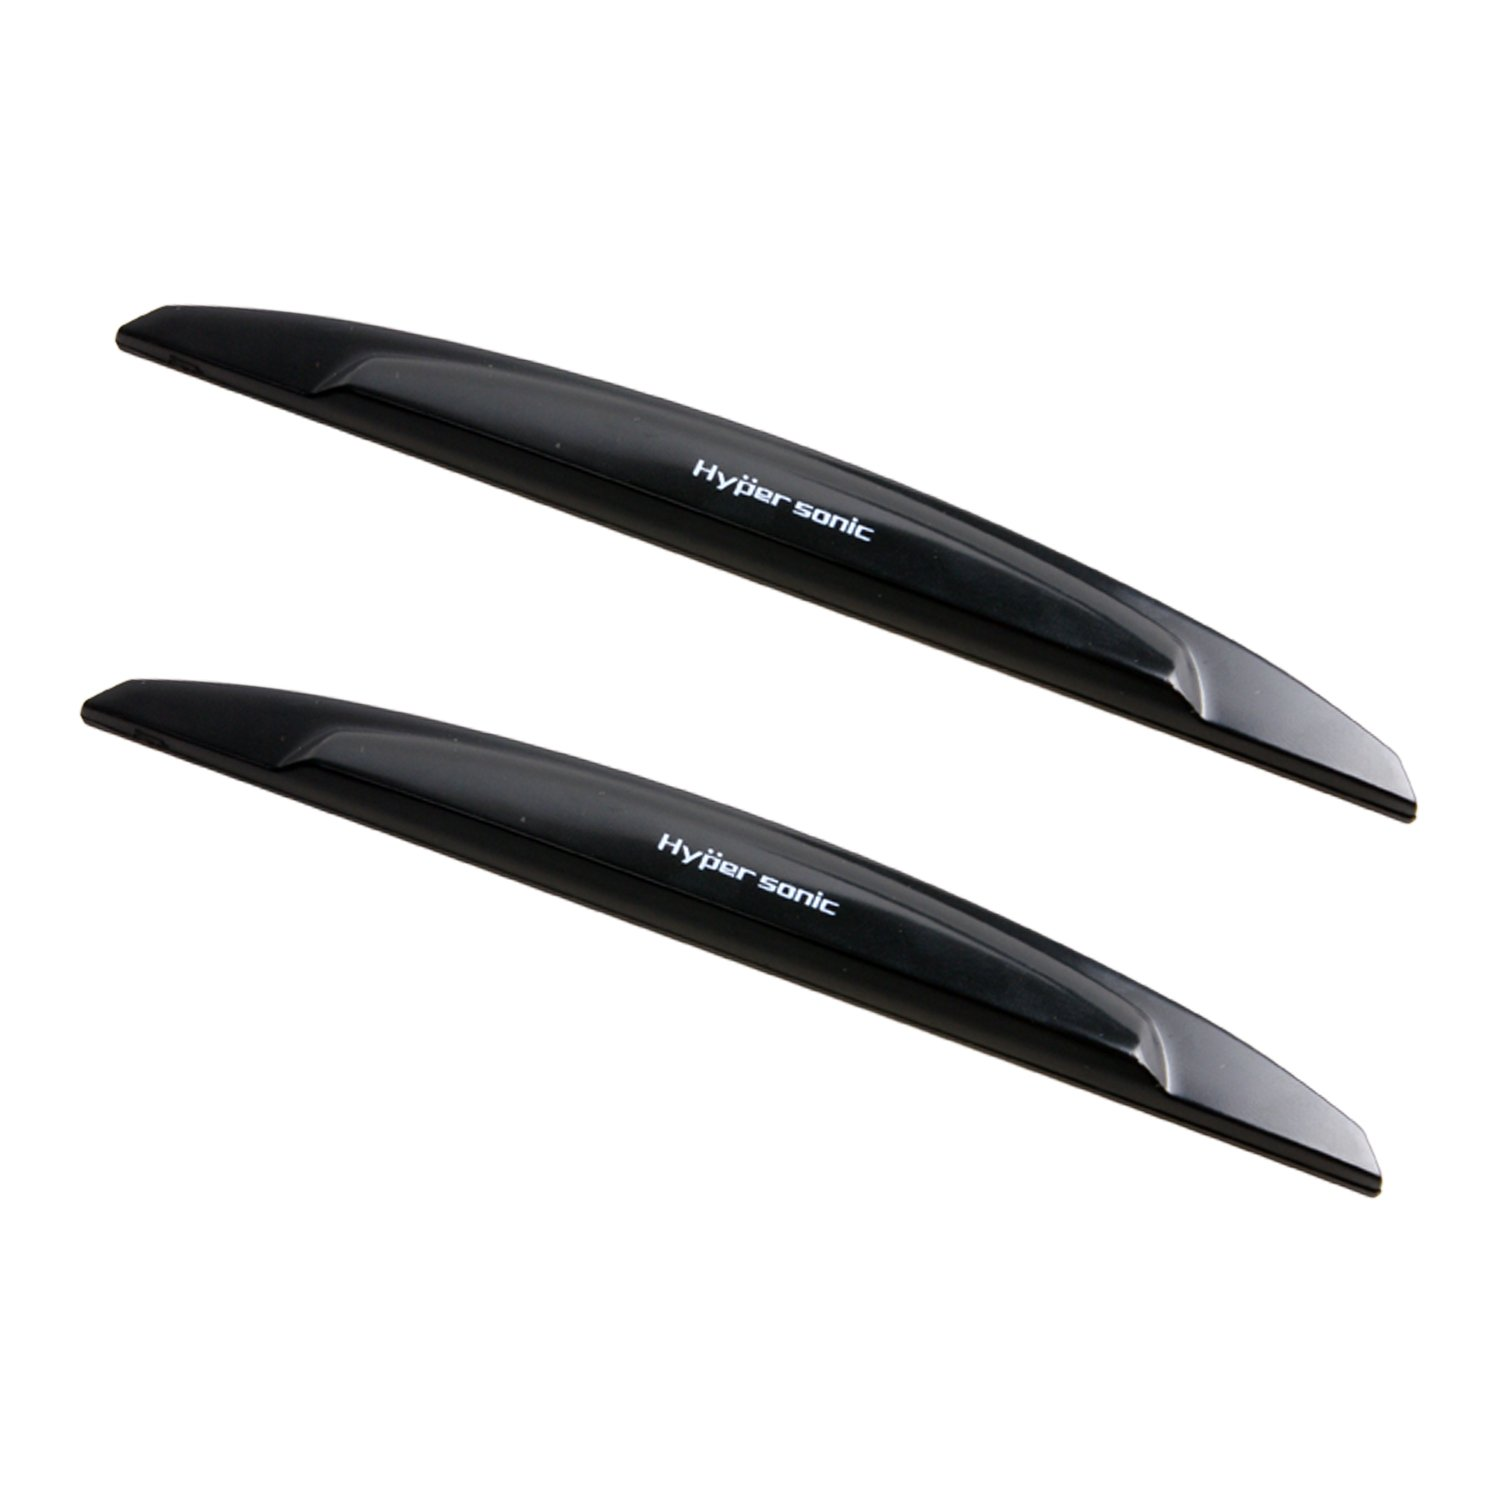 Hypersonic Car Door Edge Protector Vehicle Plastic Black Trim Bumper Side Guard O&K JAWS Co. LTD.